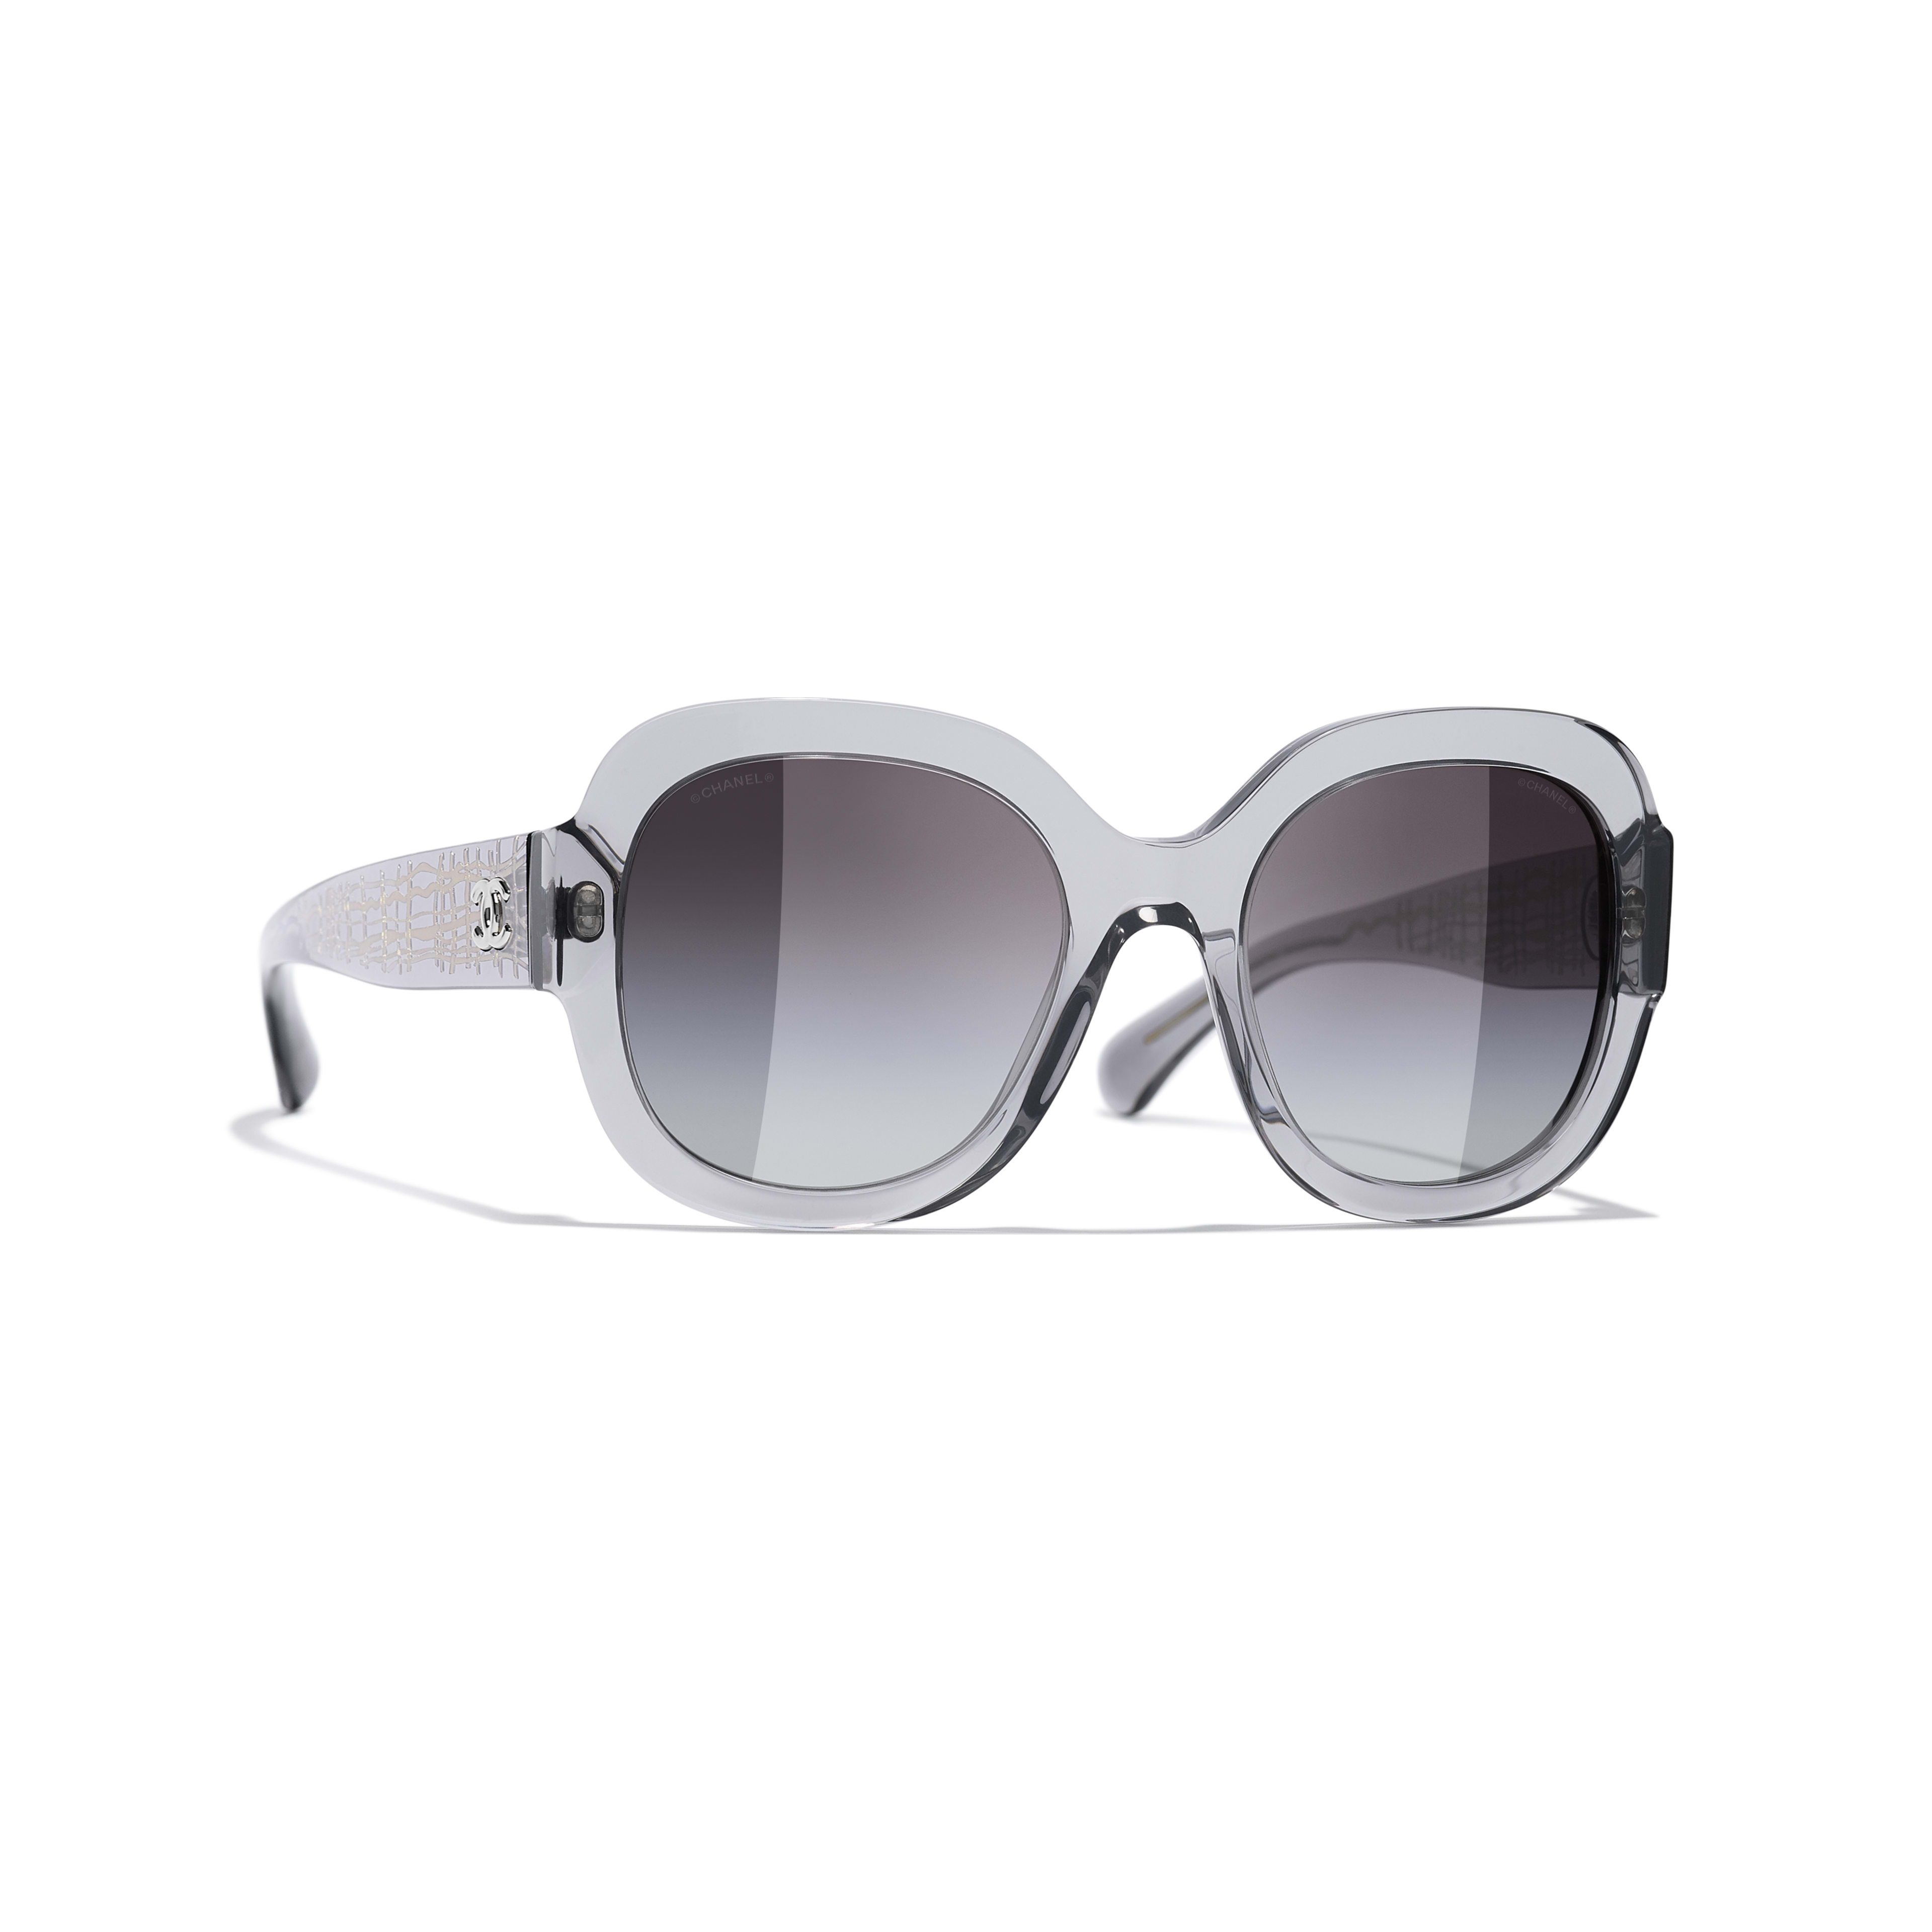 Square Sunglasses - Transparent Grey - Acetate & Metal - CHANEL - Default view - see standard sized version